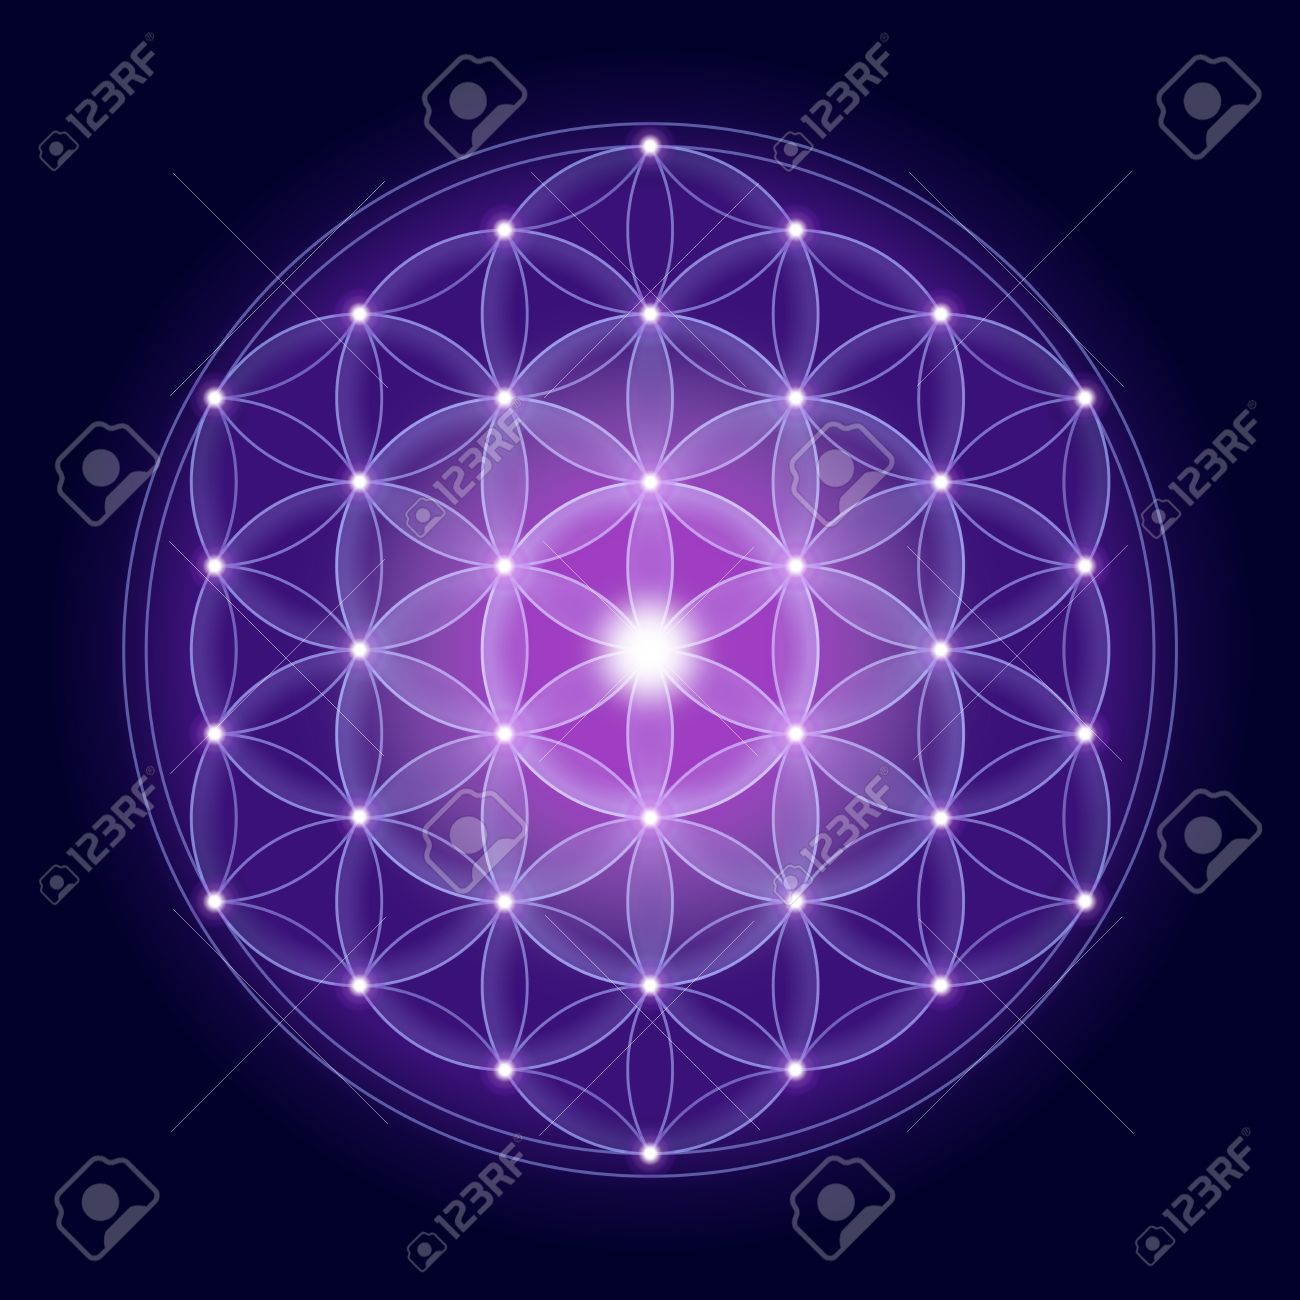 Bright Flower of Life with stars on dark blue background, a spiritual symbol and Sacred Geometry since ancient times. Banque d'images - 38616351